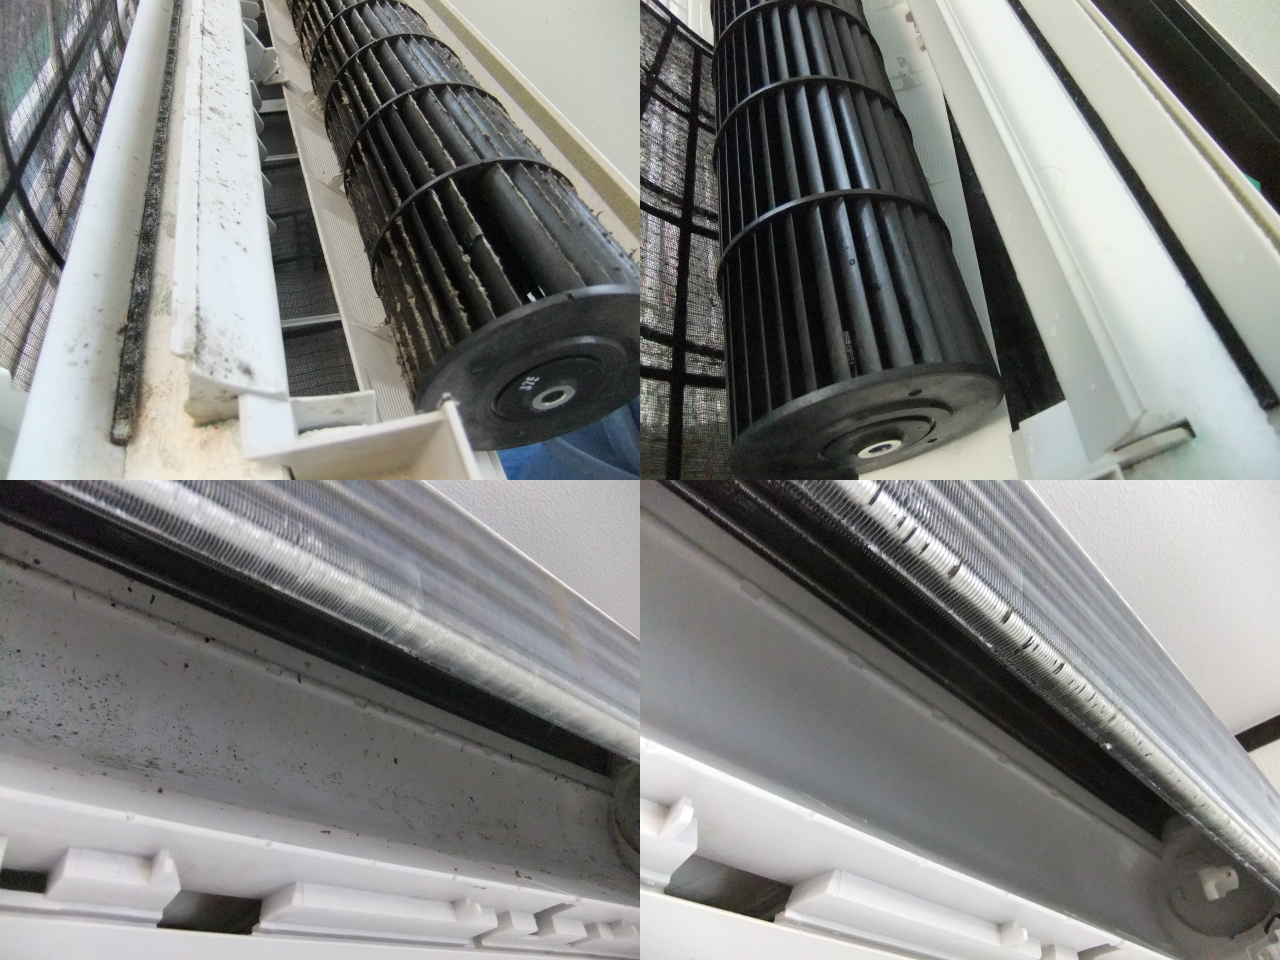 http://ajras.net/images/120629-aircon2.jpg